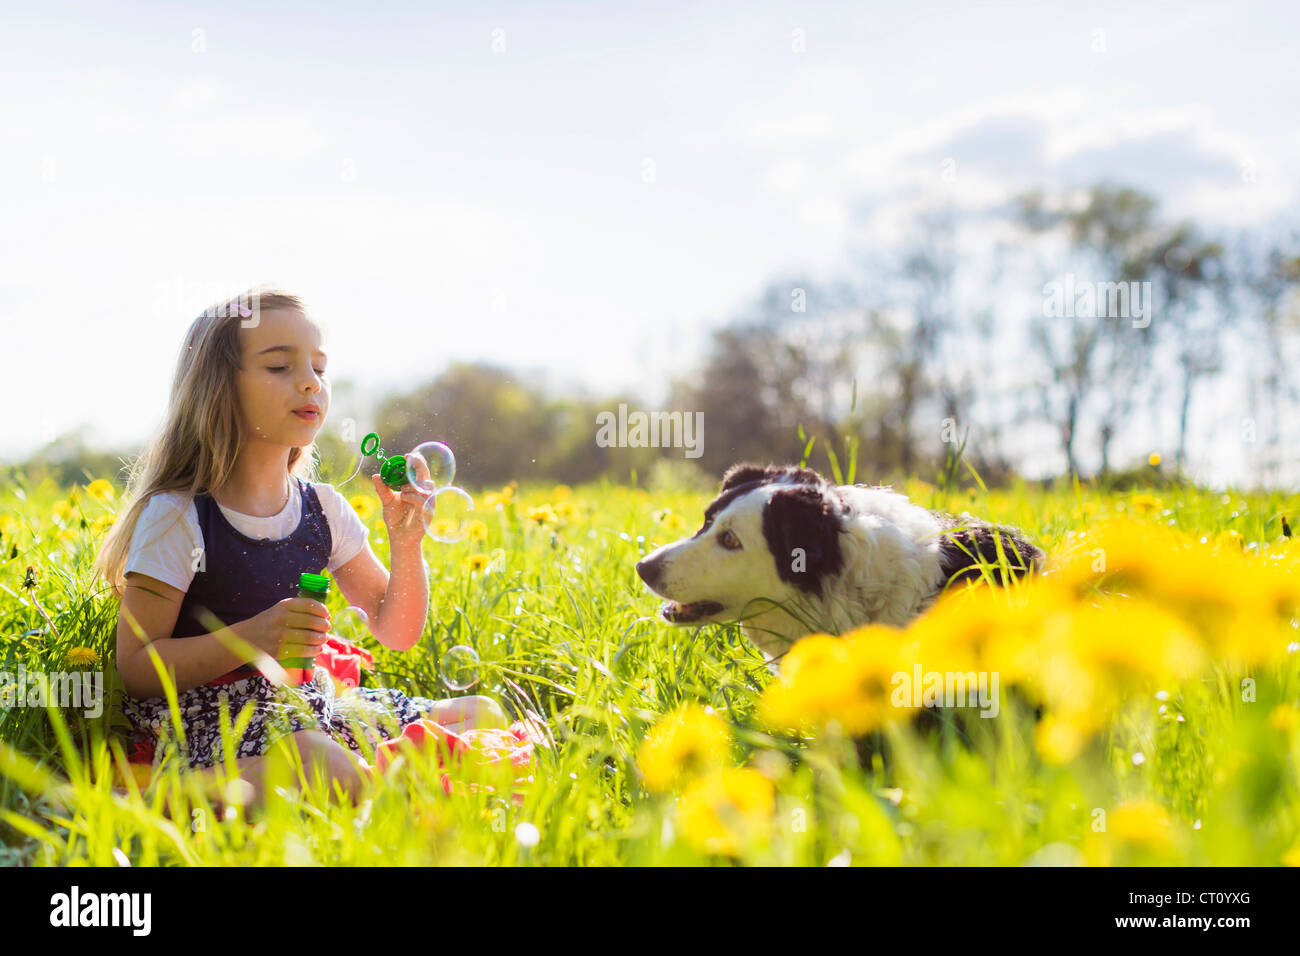 Girl blowing bubbles with dog in field Photo Stock